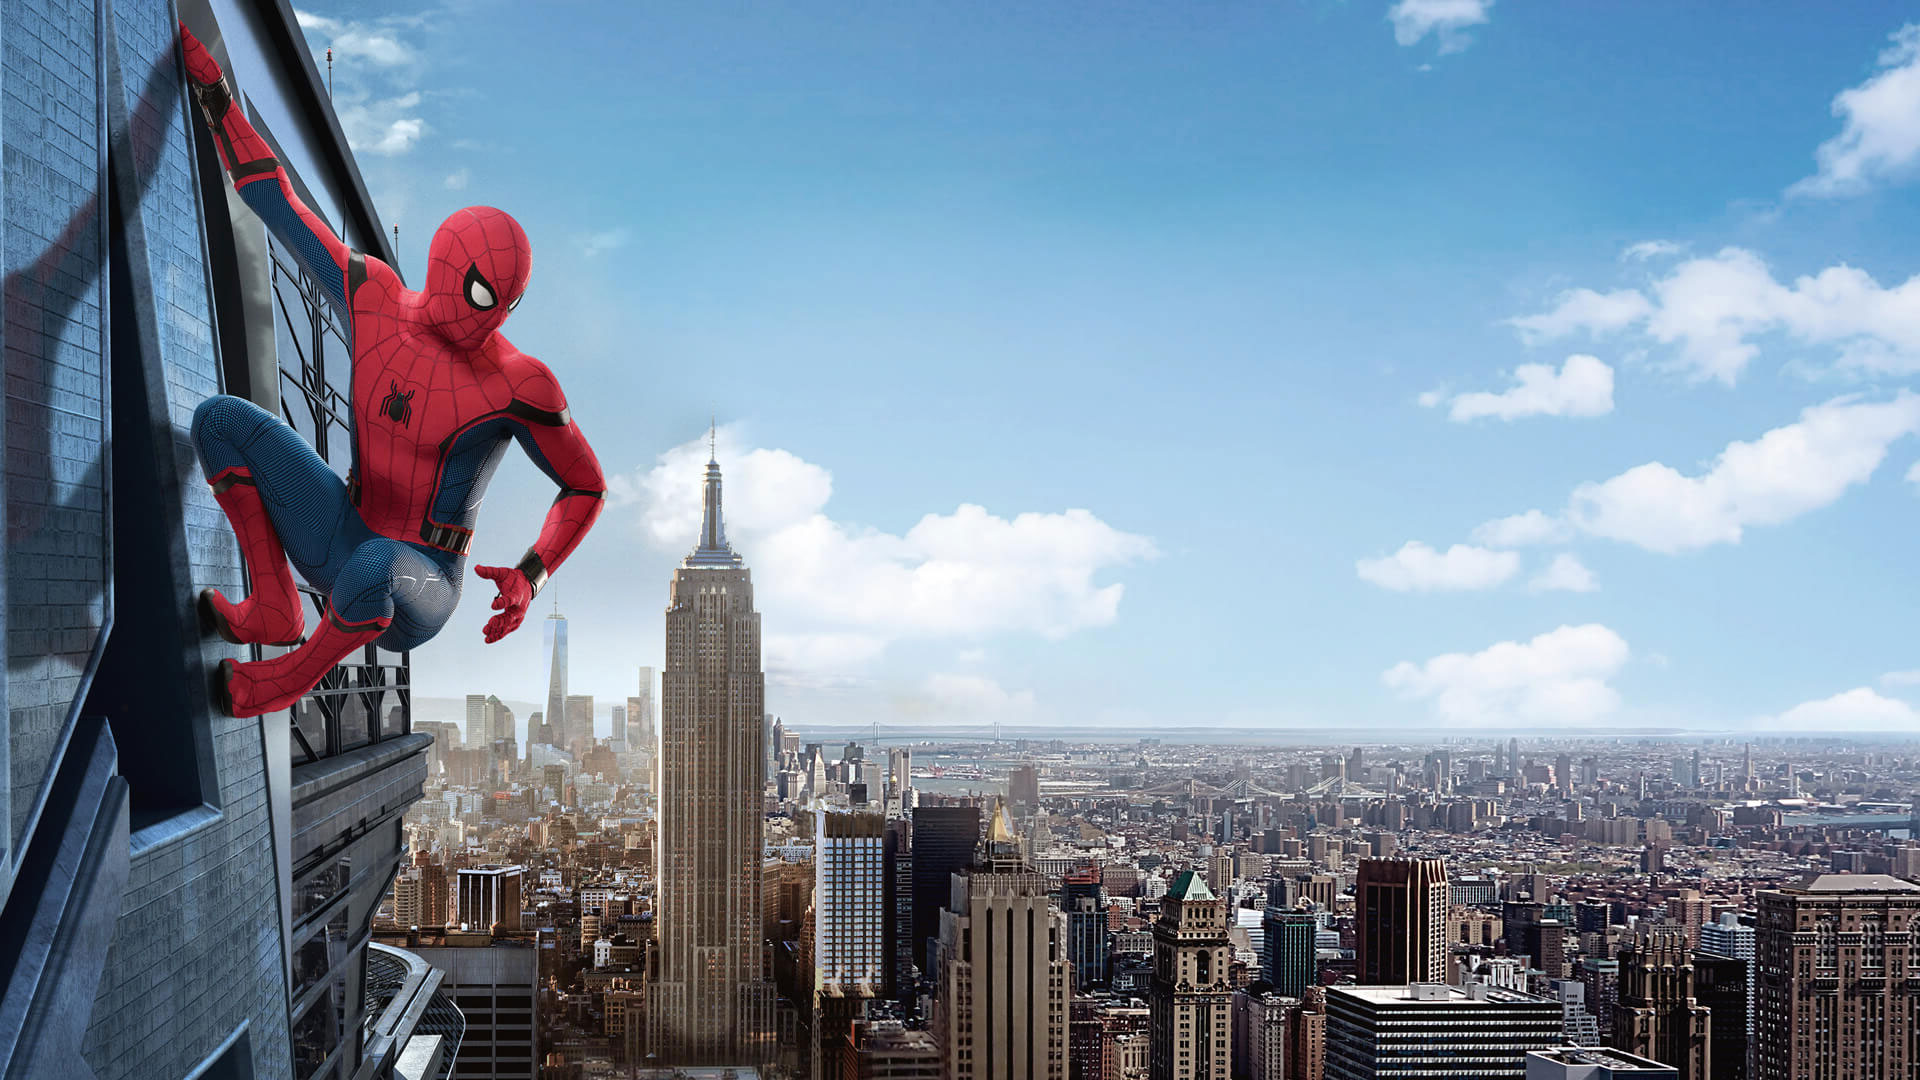 Spider Man Homecoming 2017 Movie Desktop Wallpapers 1920x1080